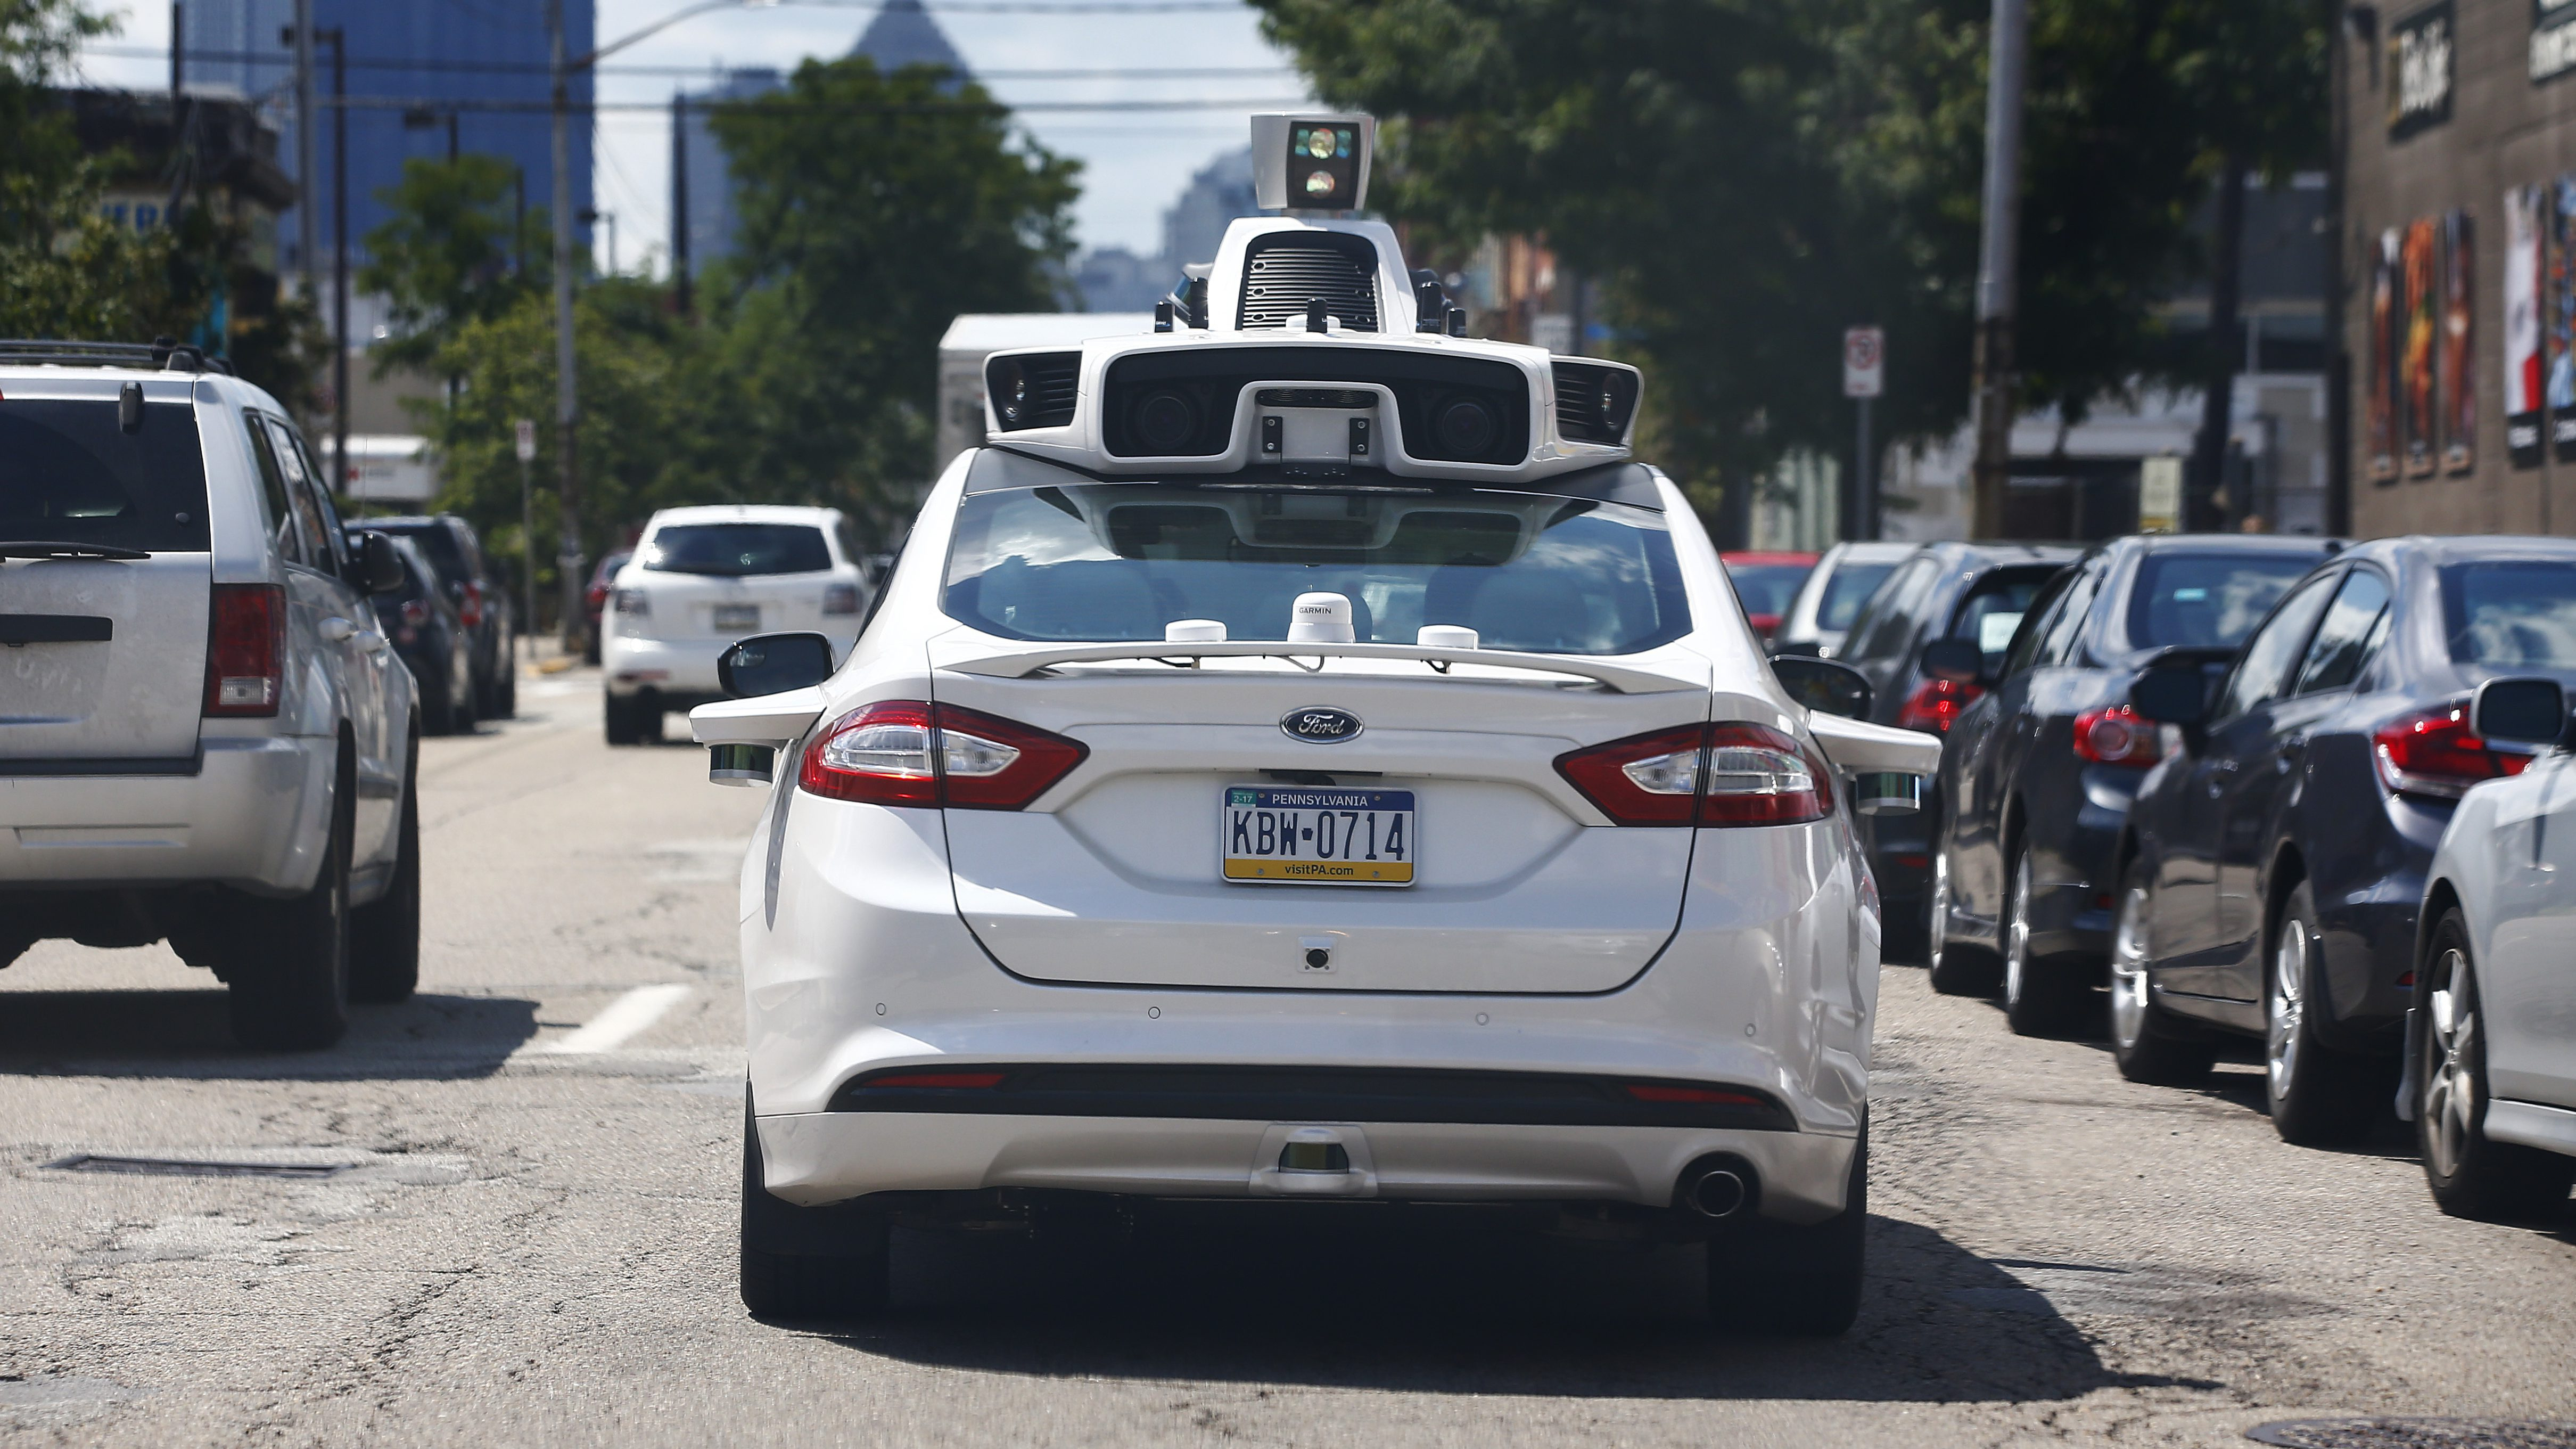 Uber tests a self-driving Ford Fusion in Pittsburgh.